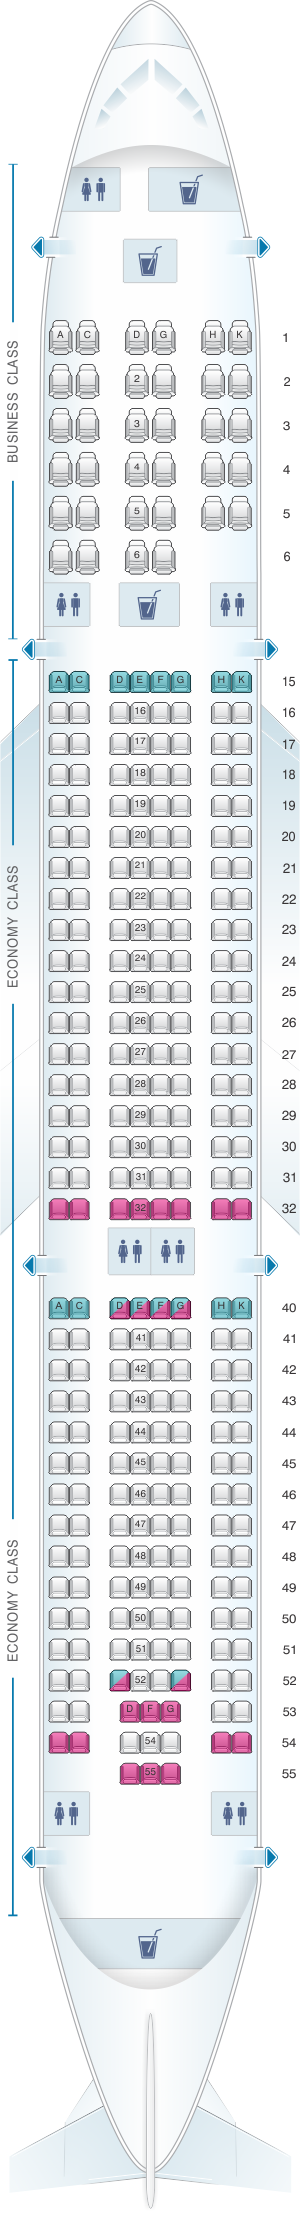 Seat map for Air Europa Airbus A330 300